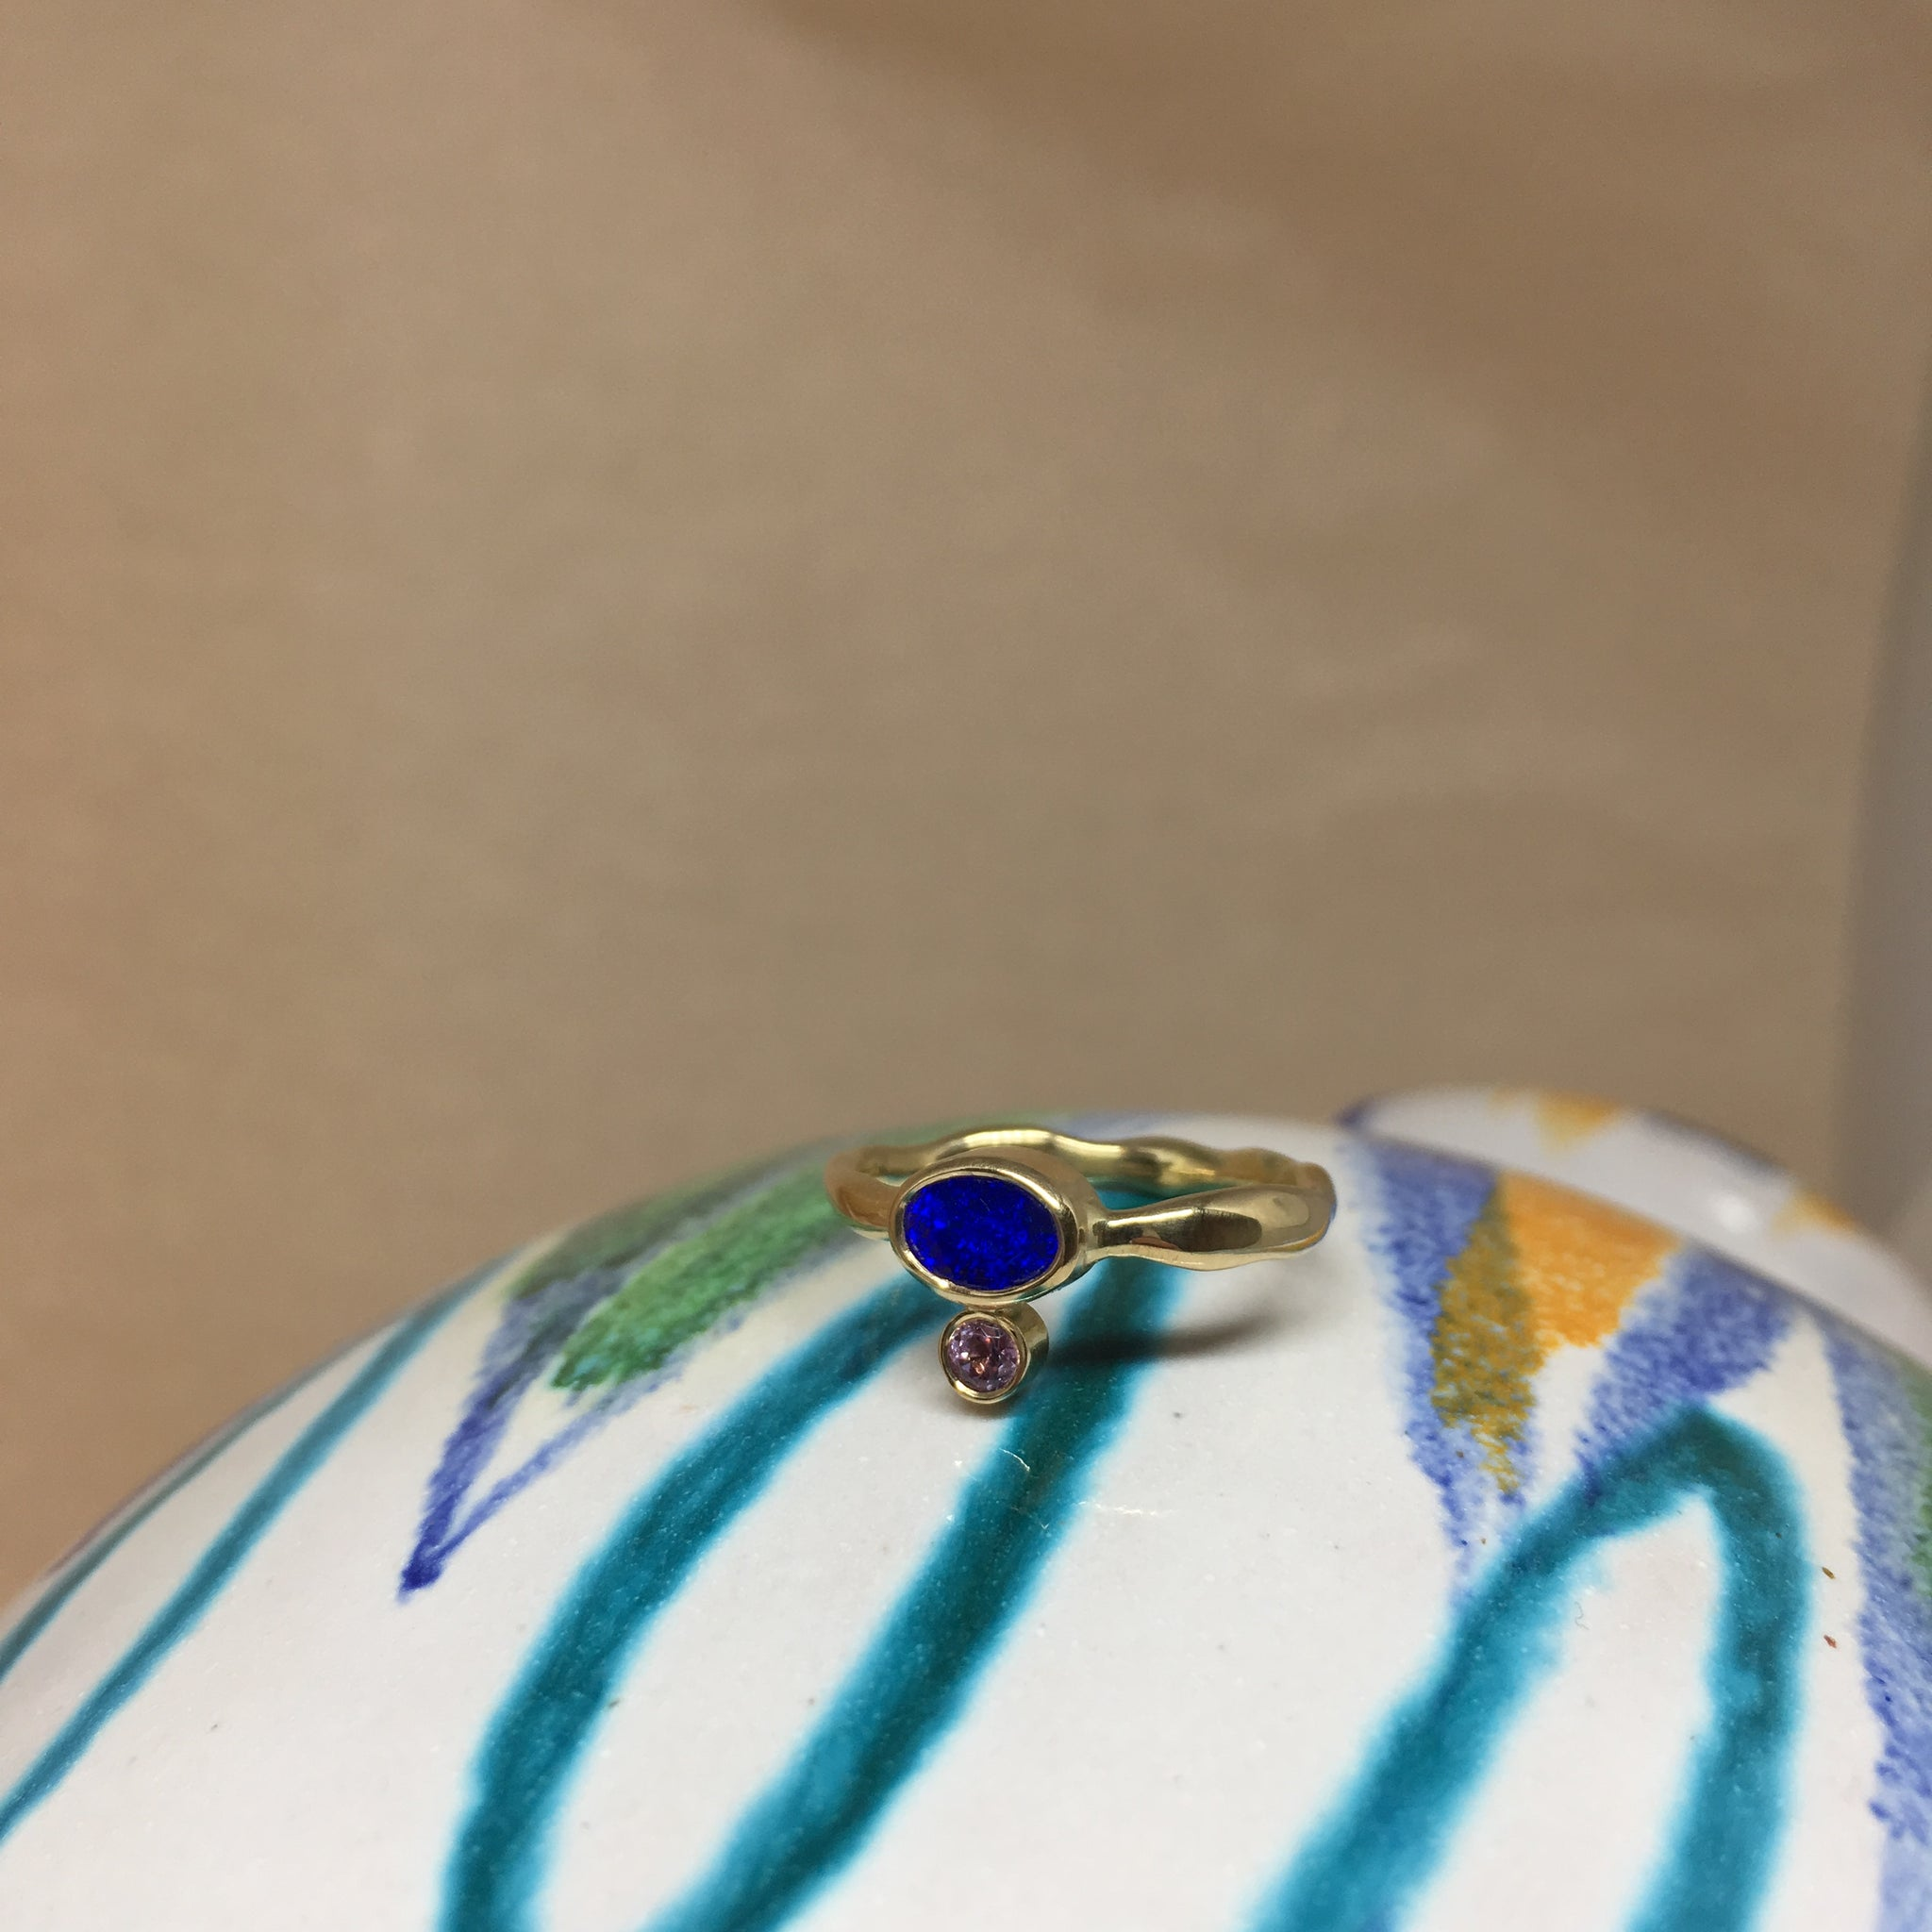 Deep blue opal ring